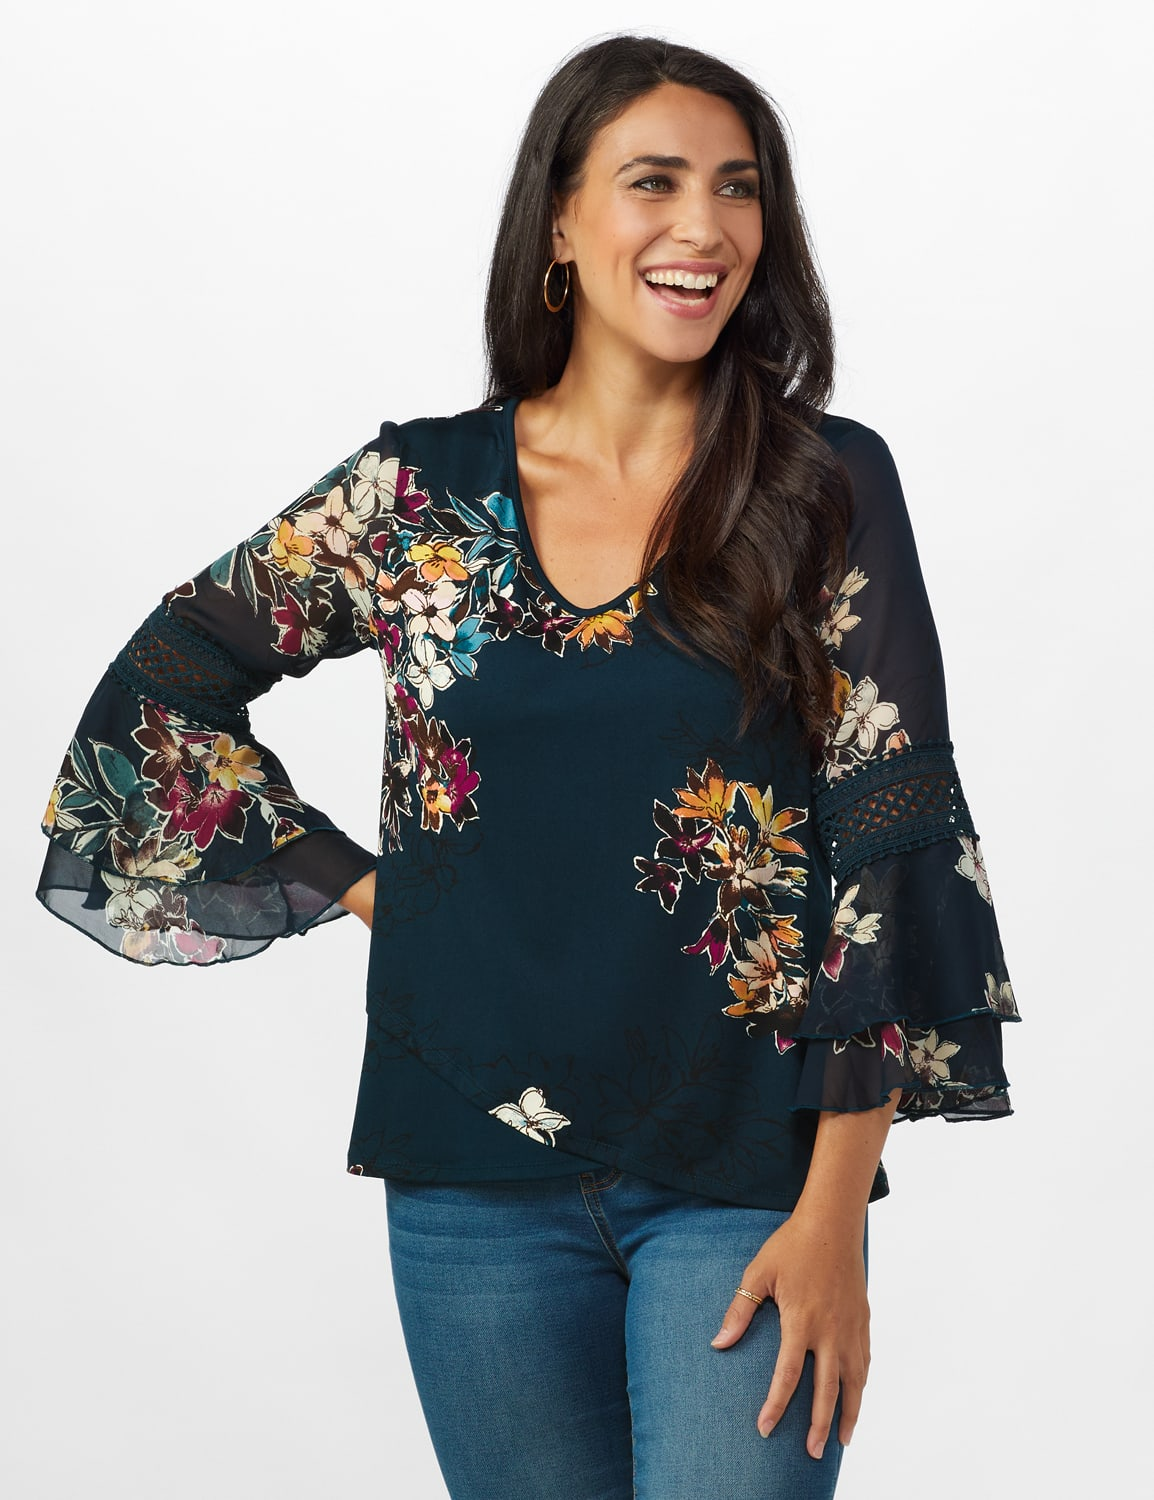 Crochet Trim V-Neck Floral Knit Top - Dark Teal/Magenta/Brown - Front